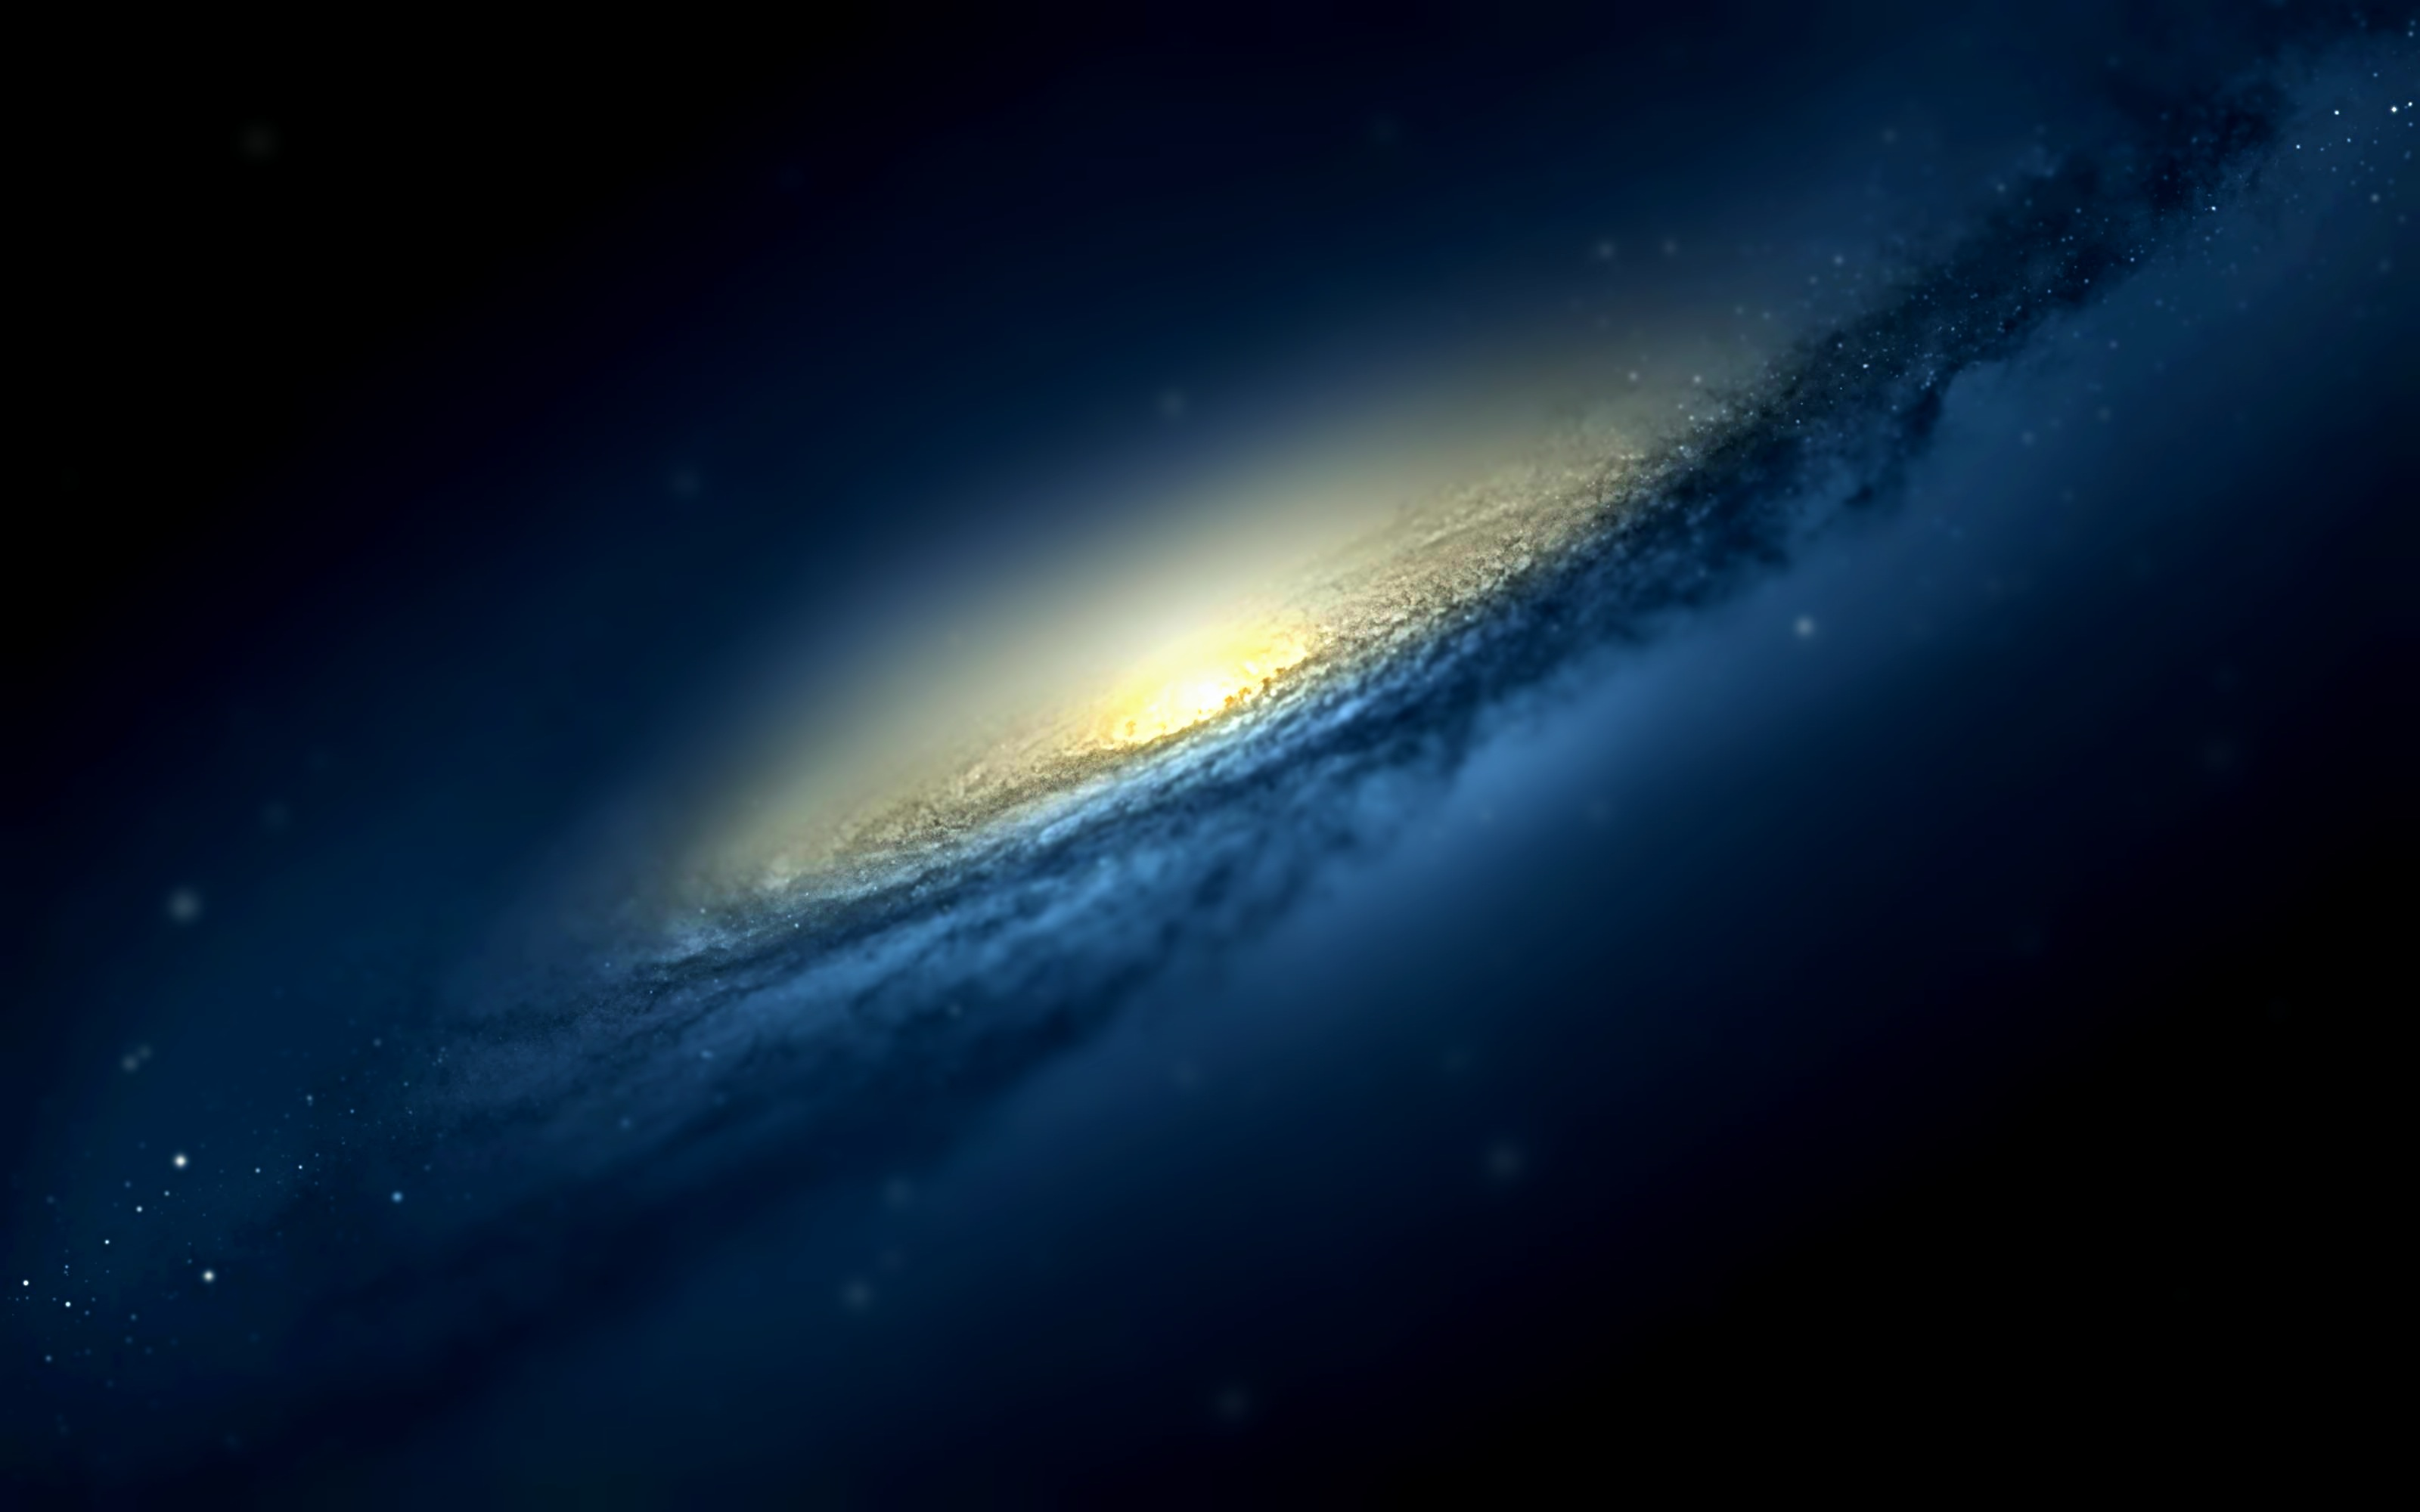 Apple Galaxy Wallpaper OS X 3200x2000